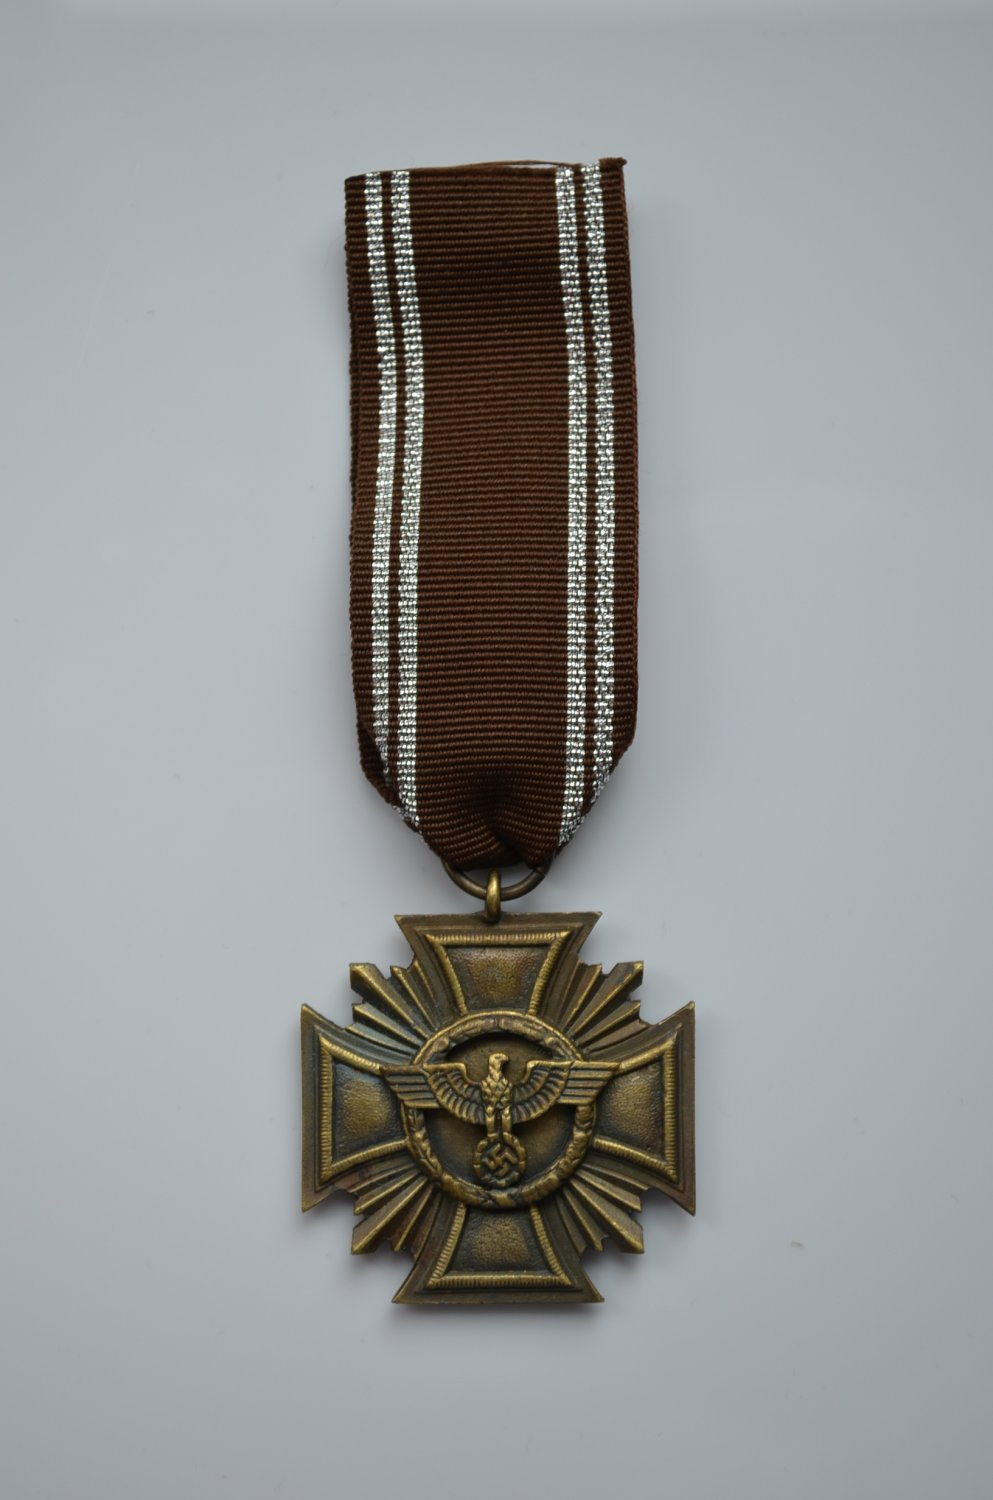 WWII THE GERMAN BRONZE MEDAL LONG SERVICE AWARDS OF THE NSDAP